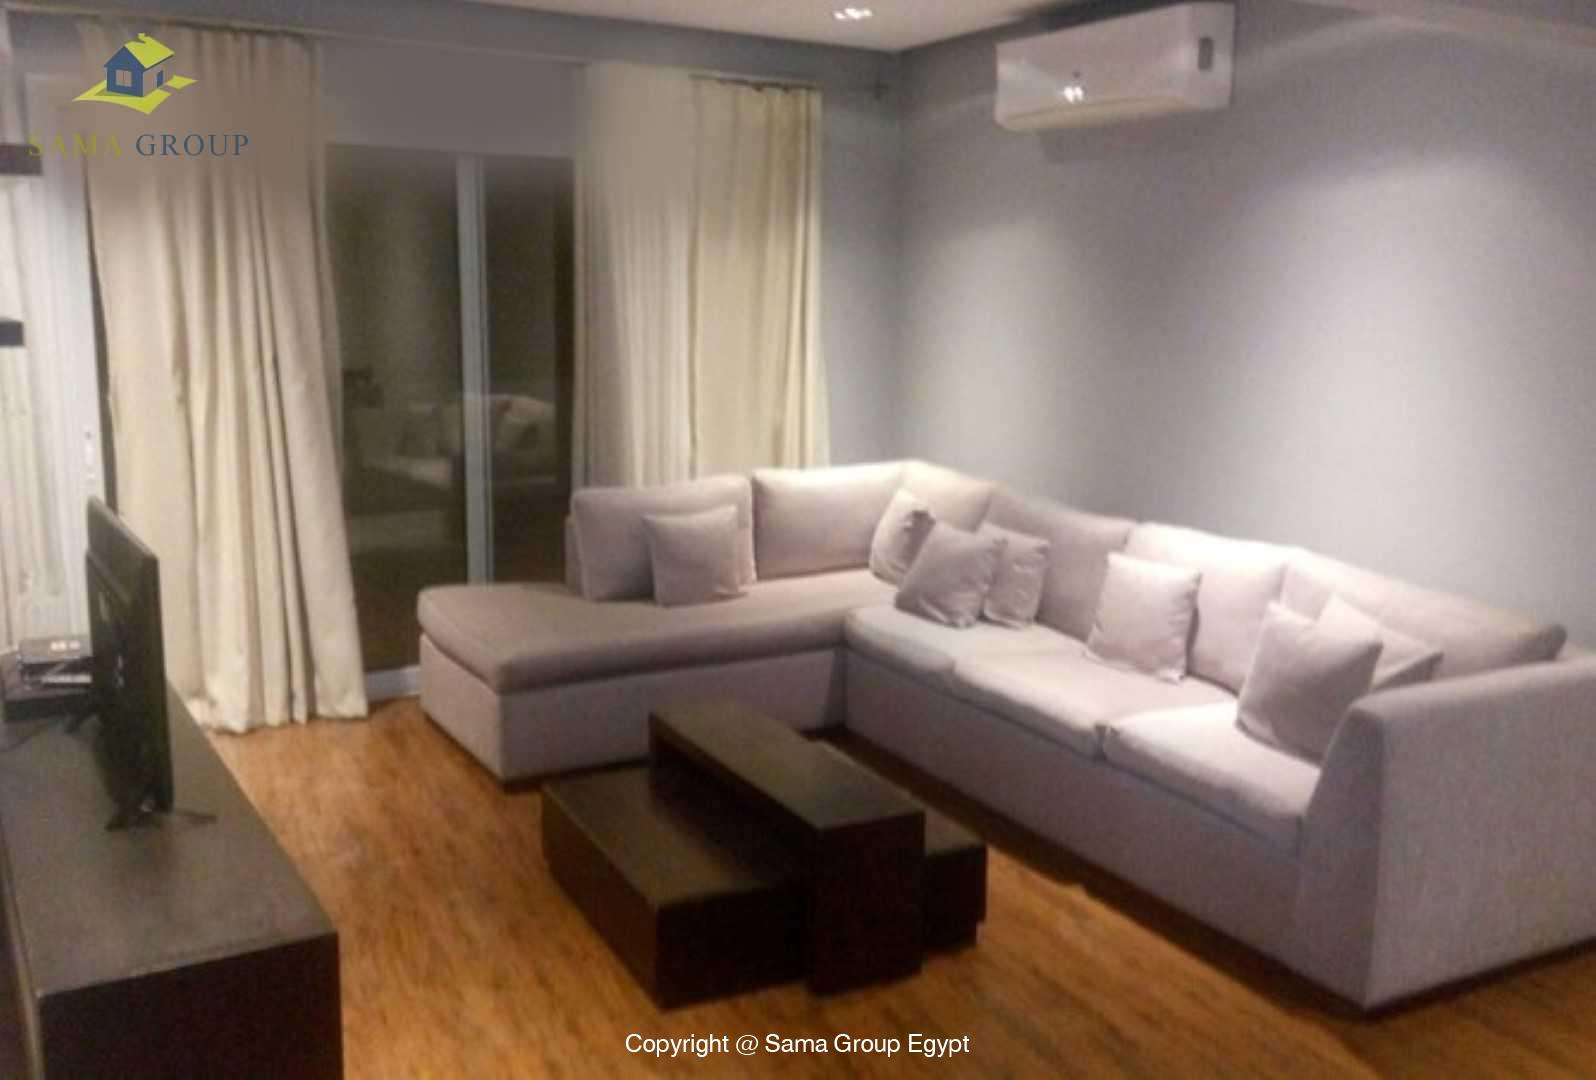 Penthouse For Rent In New Cairo Chouifat,Modern Furnished,Penthouse NO #2